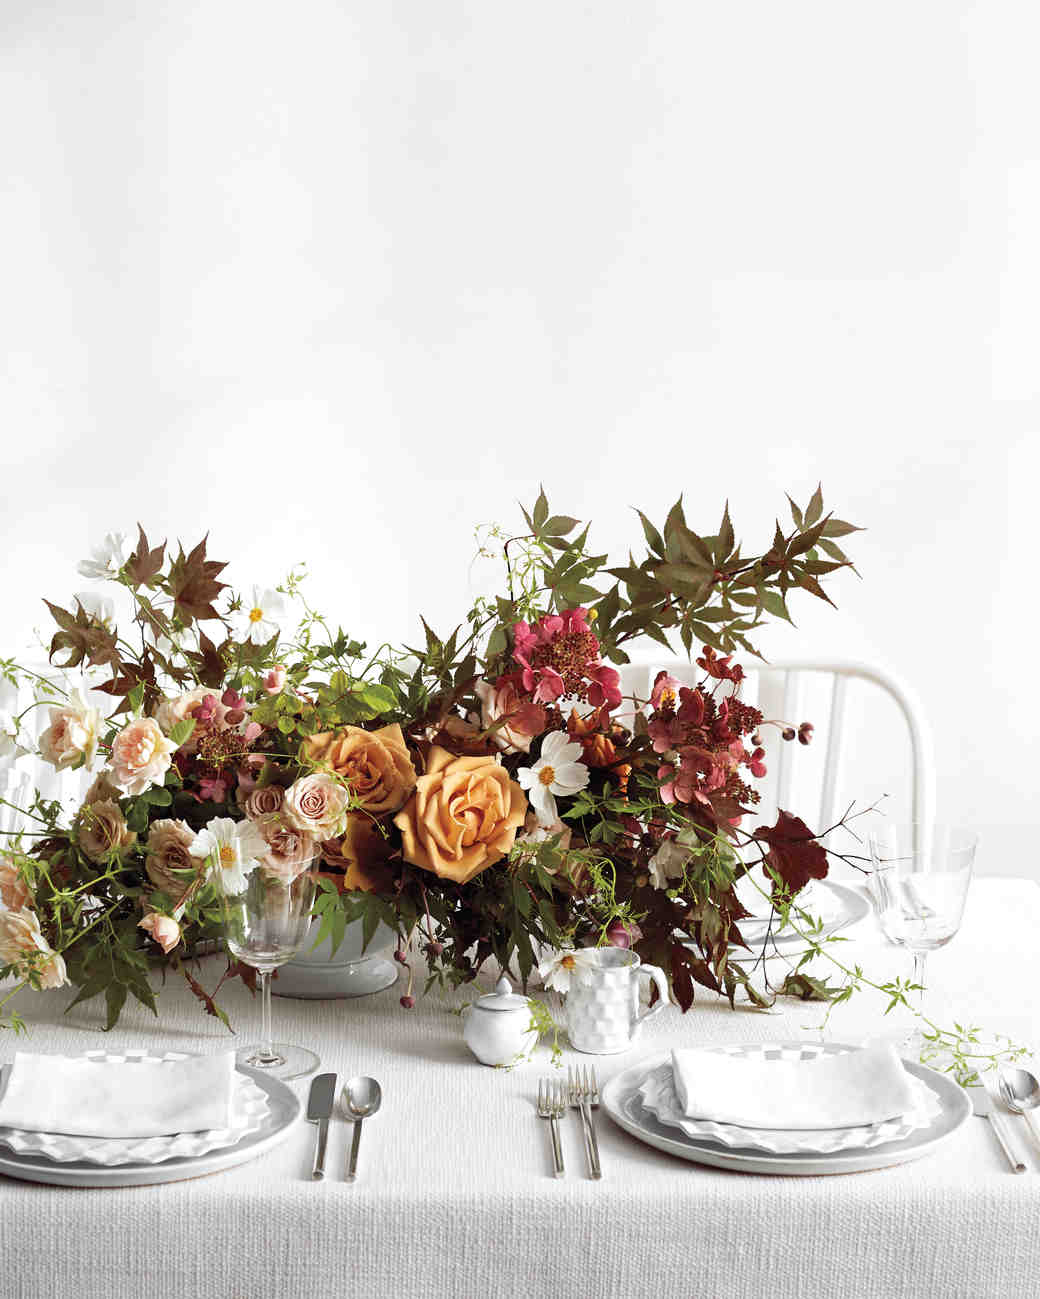 Ideas For Wedding Flower Arrangements: Fall Wedding Flower Ideas From Our Favorite Florists